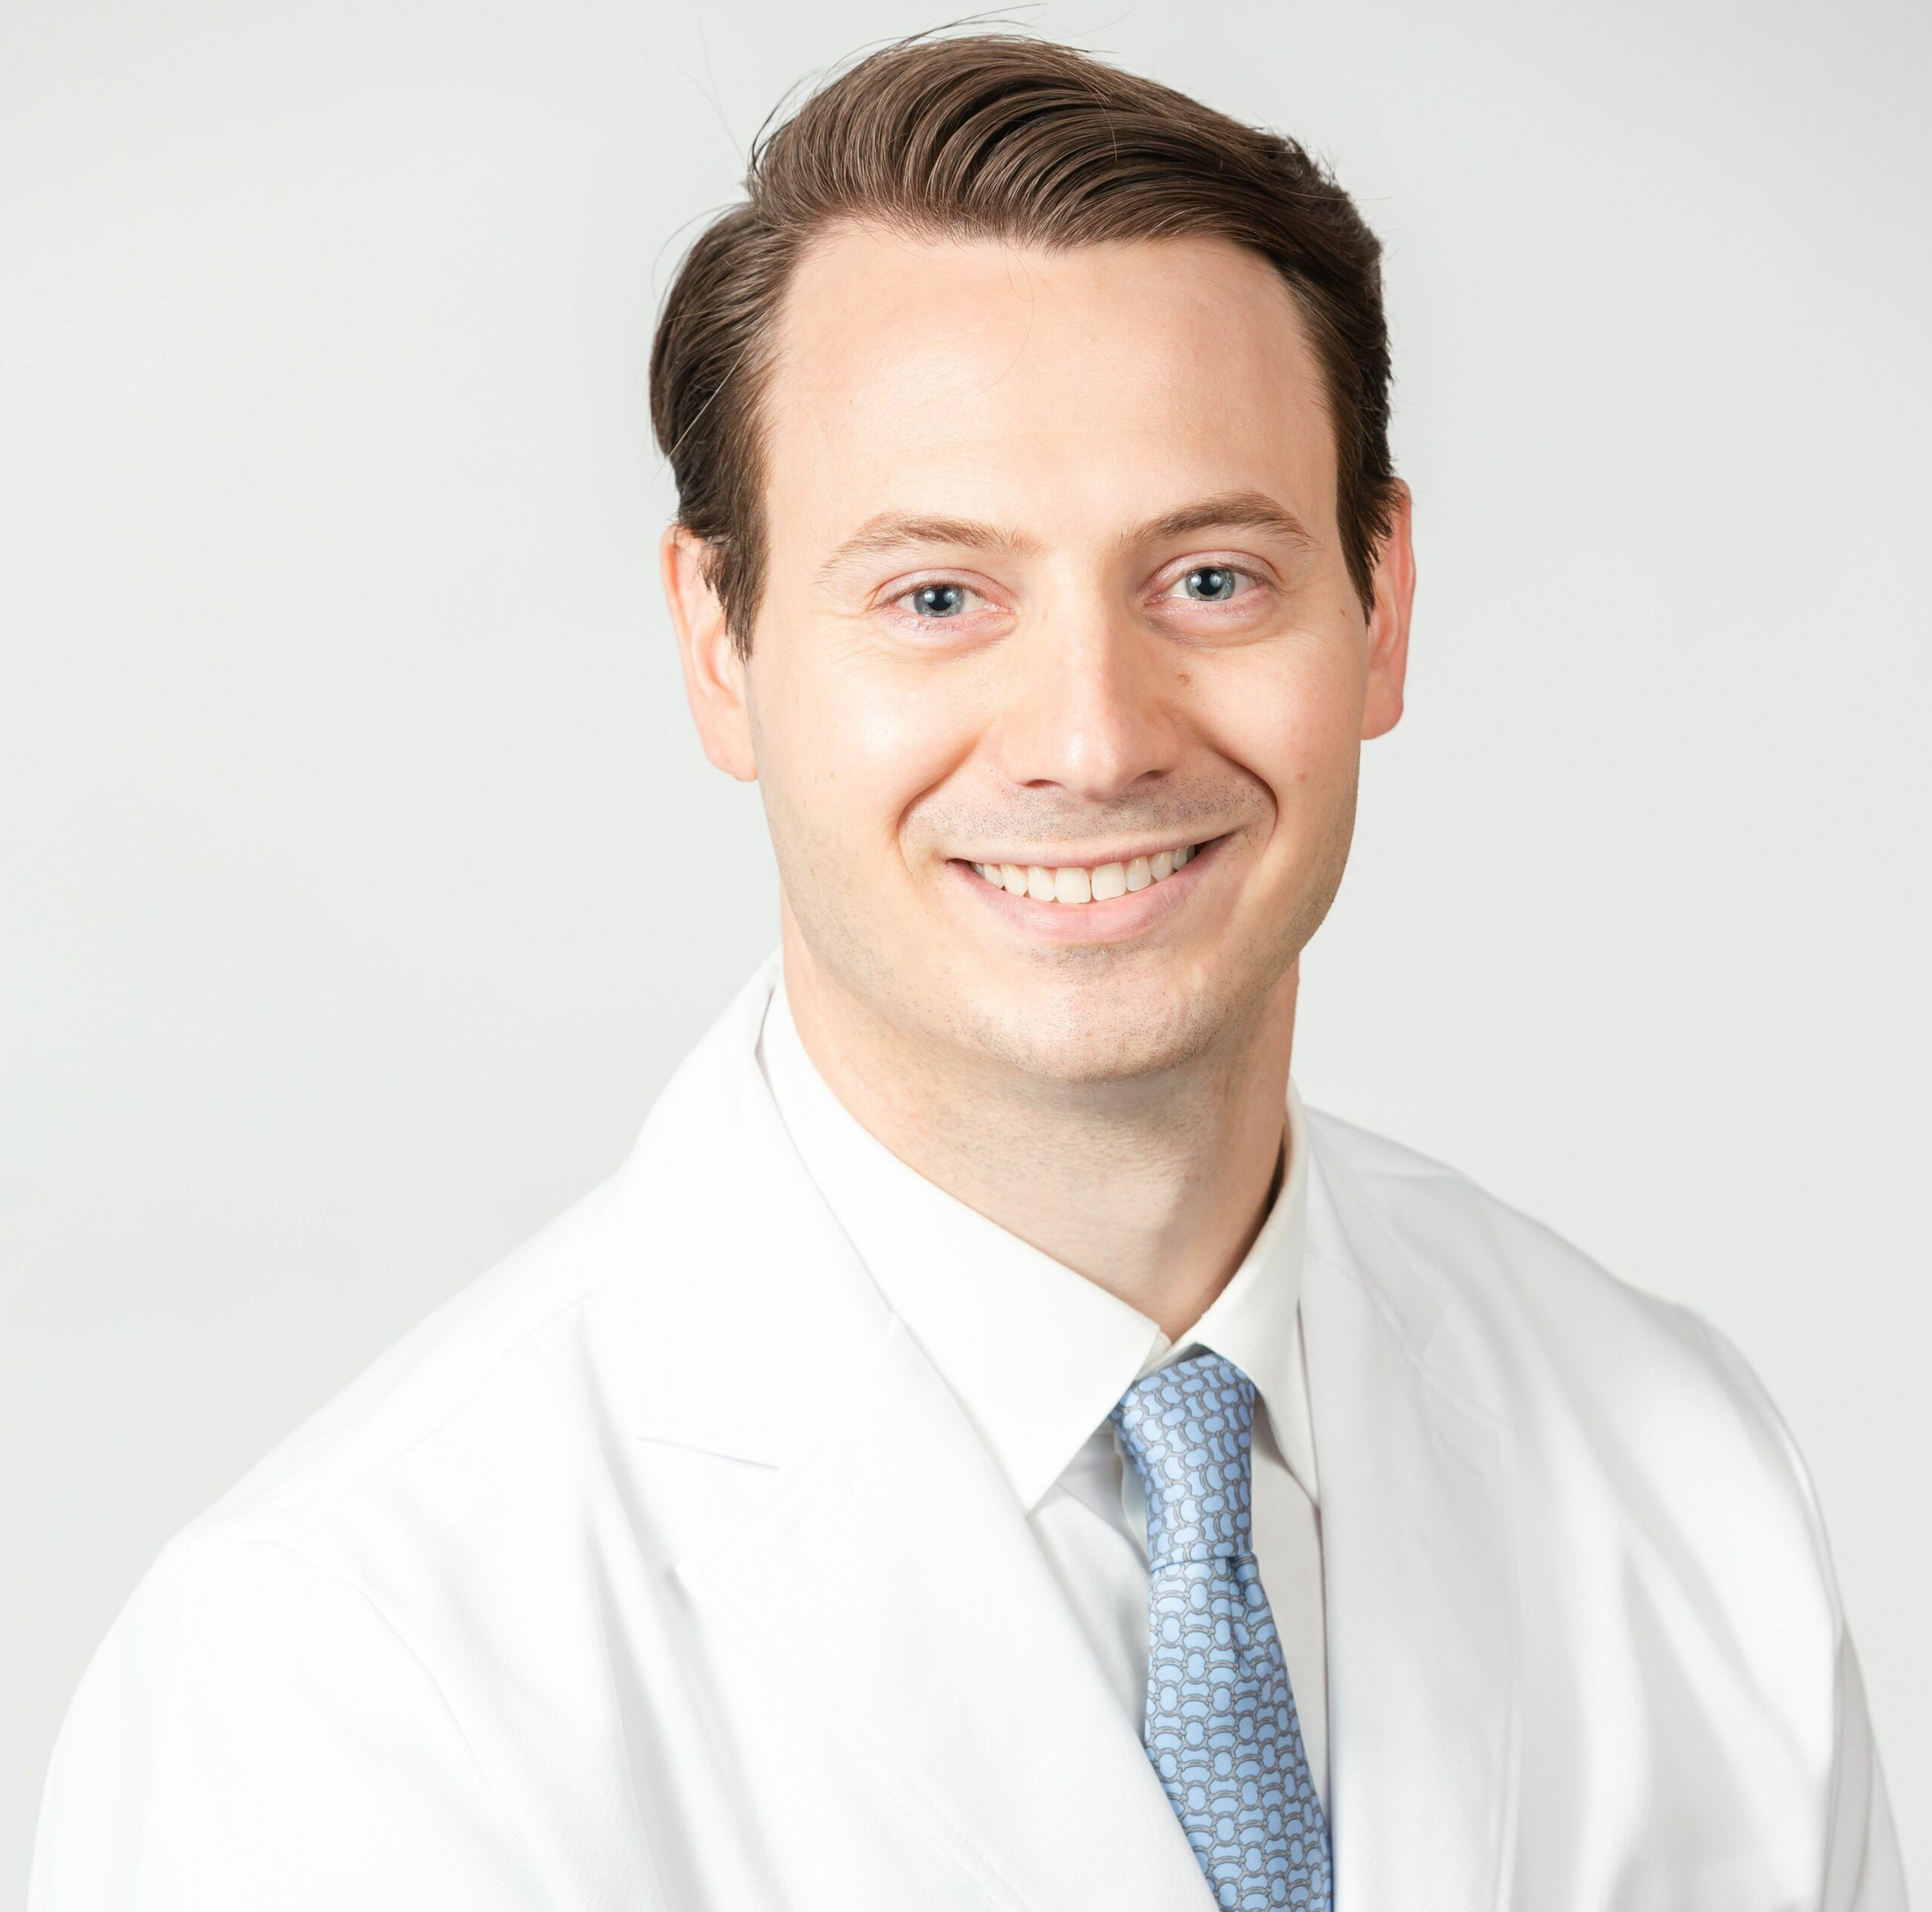 Headshot of Dr. Wilson, Plastic Surgeon of Laser & Skin Surgery in NYC, NY.